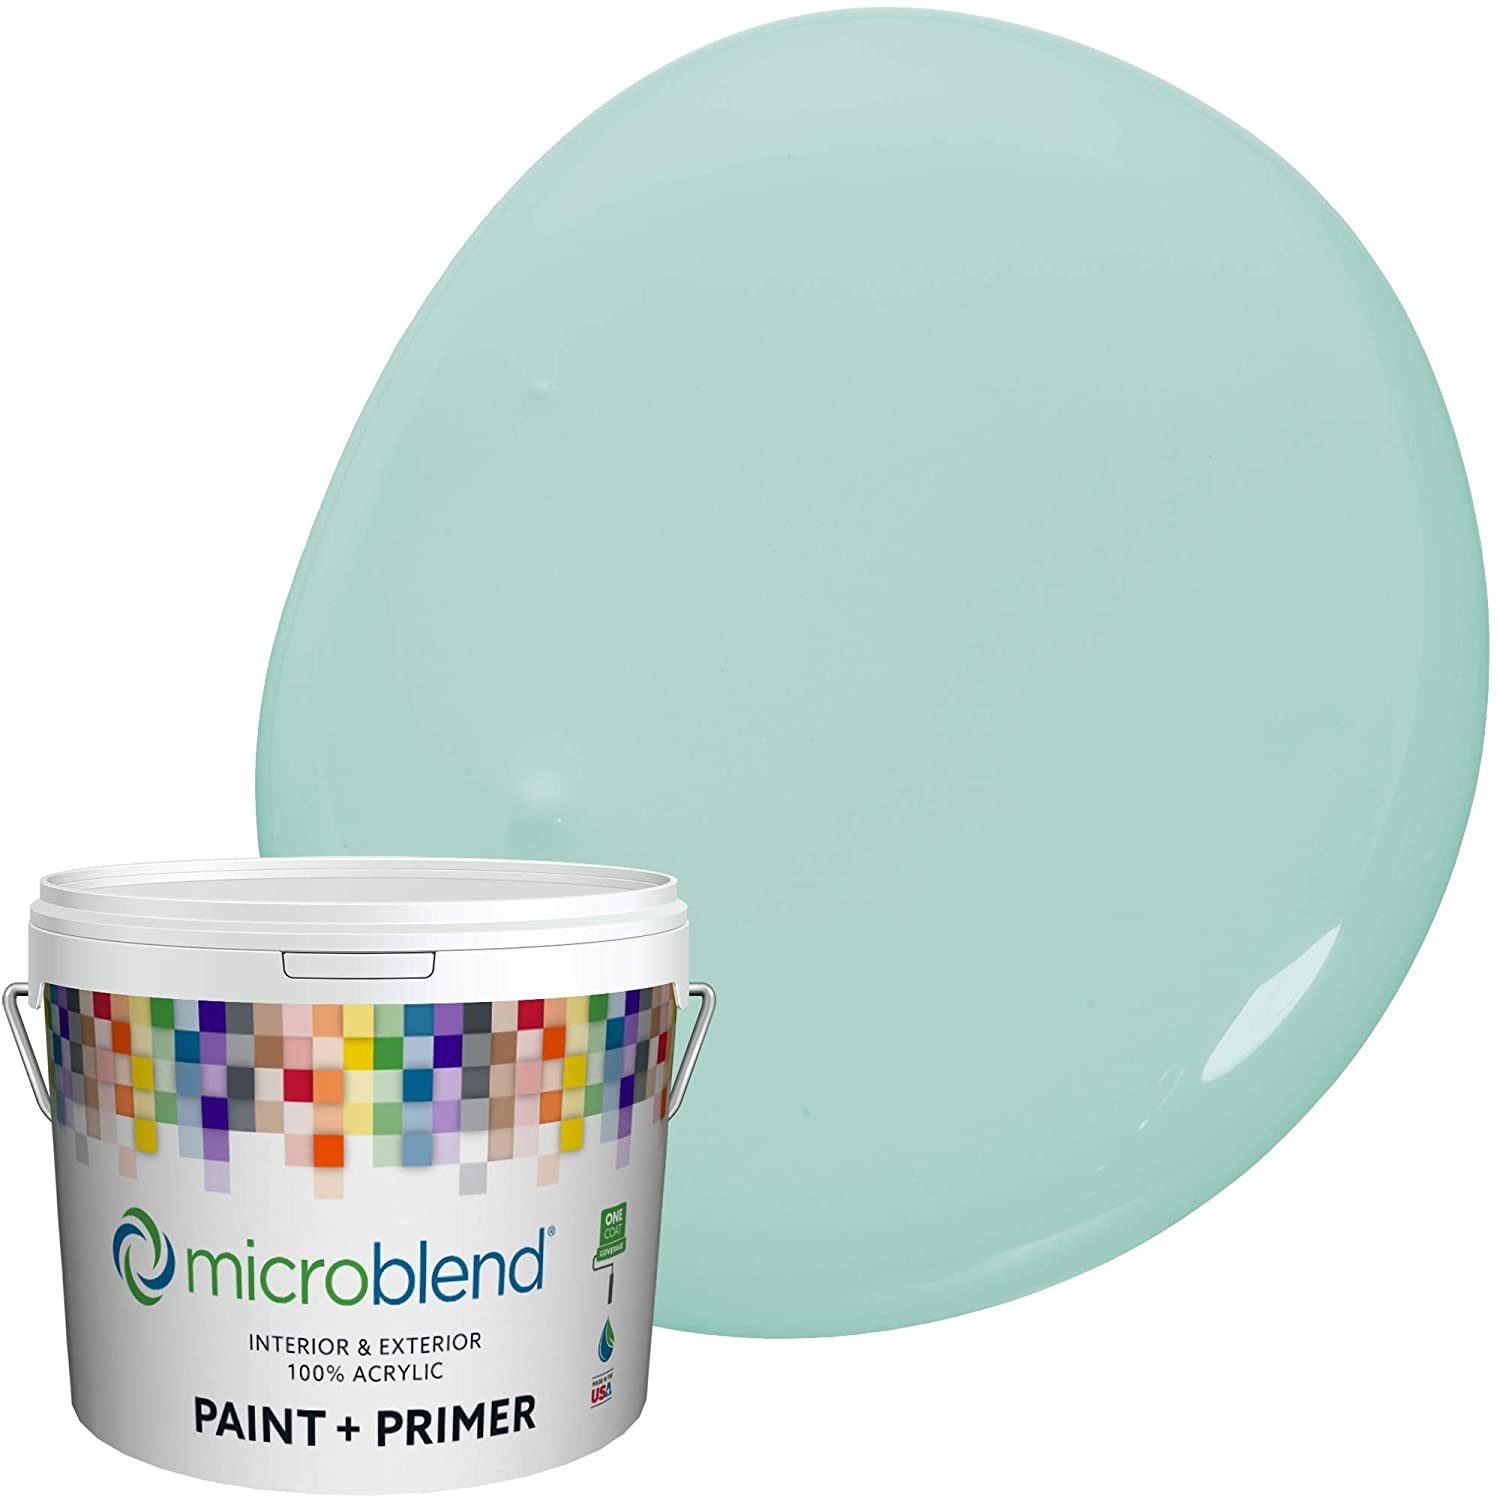 Microblend Interior Paint and Primer - Turquoise/Misty Teal, Flat Sheen, 1-Gallon, Premium Quality, One Coat Hide, Low VOC, Washable, Microblend Blues Family